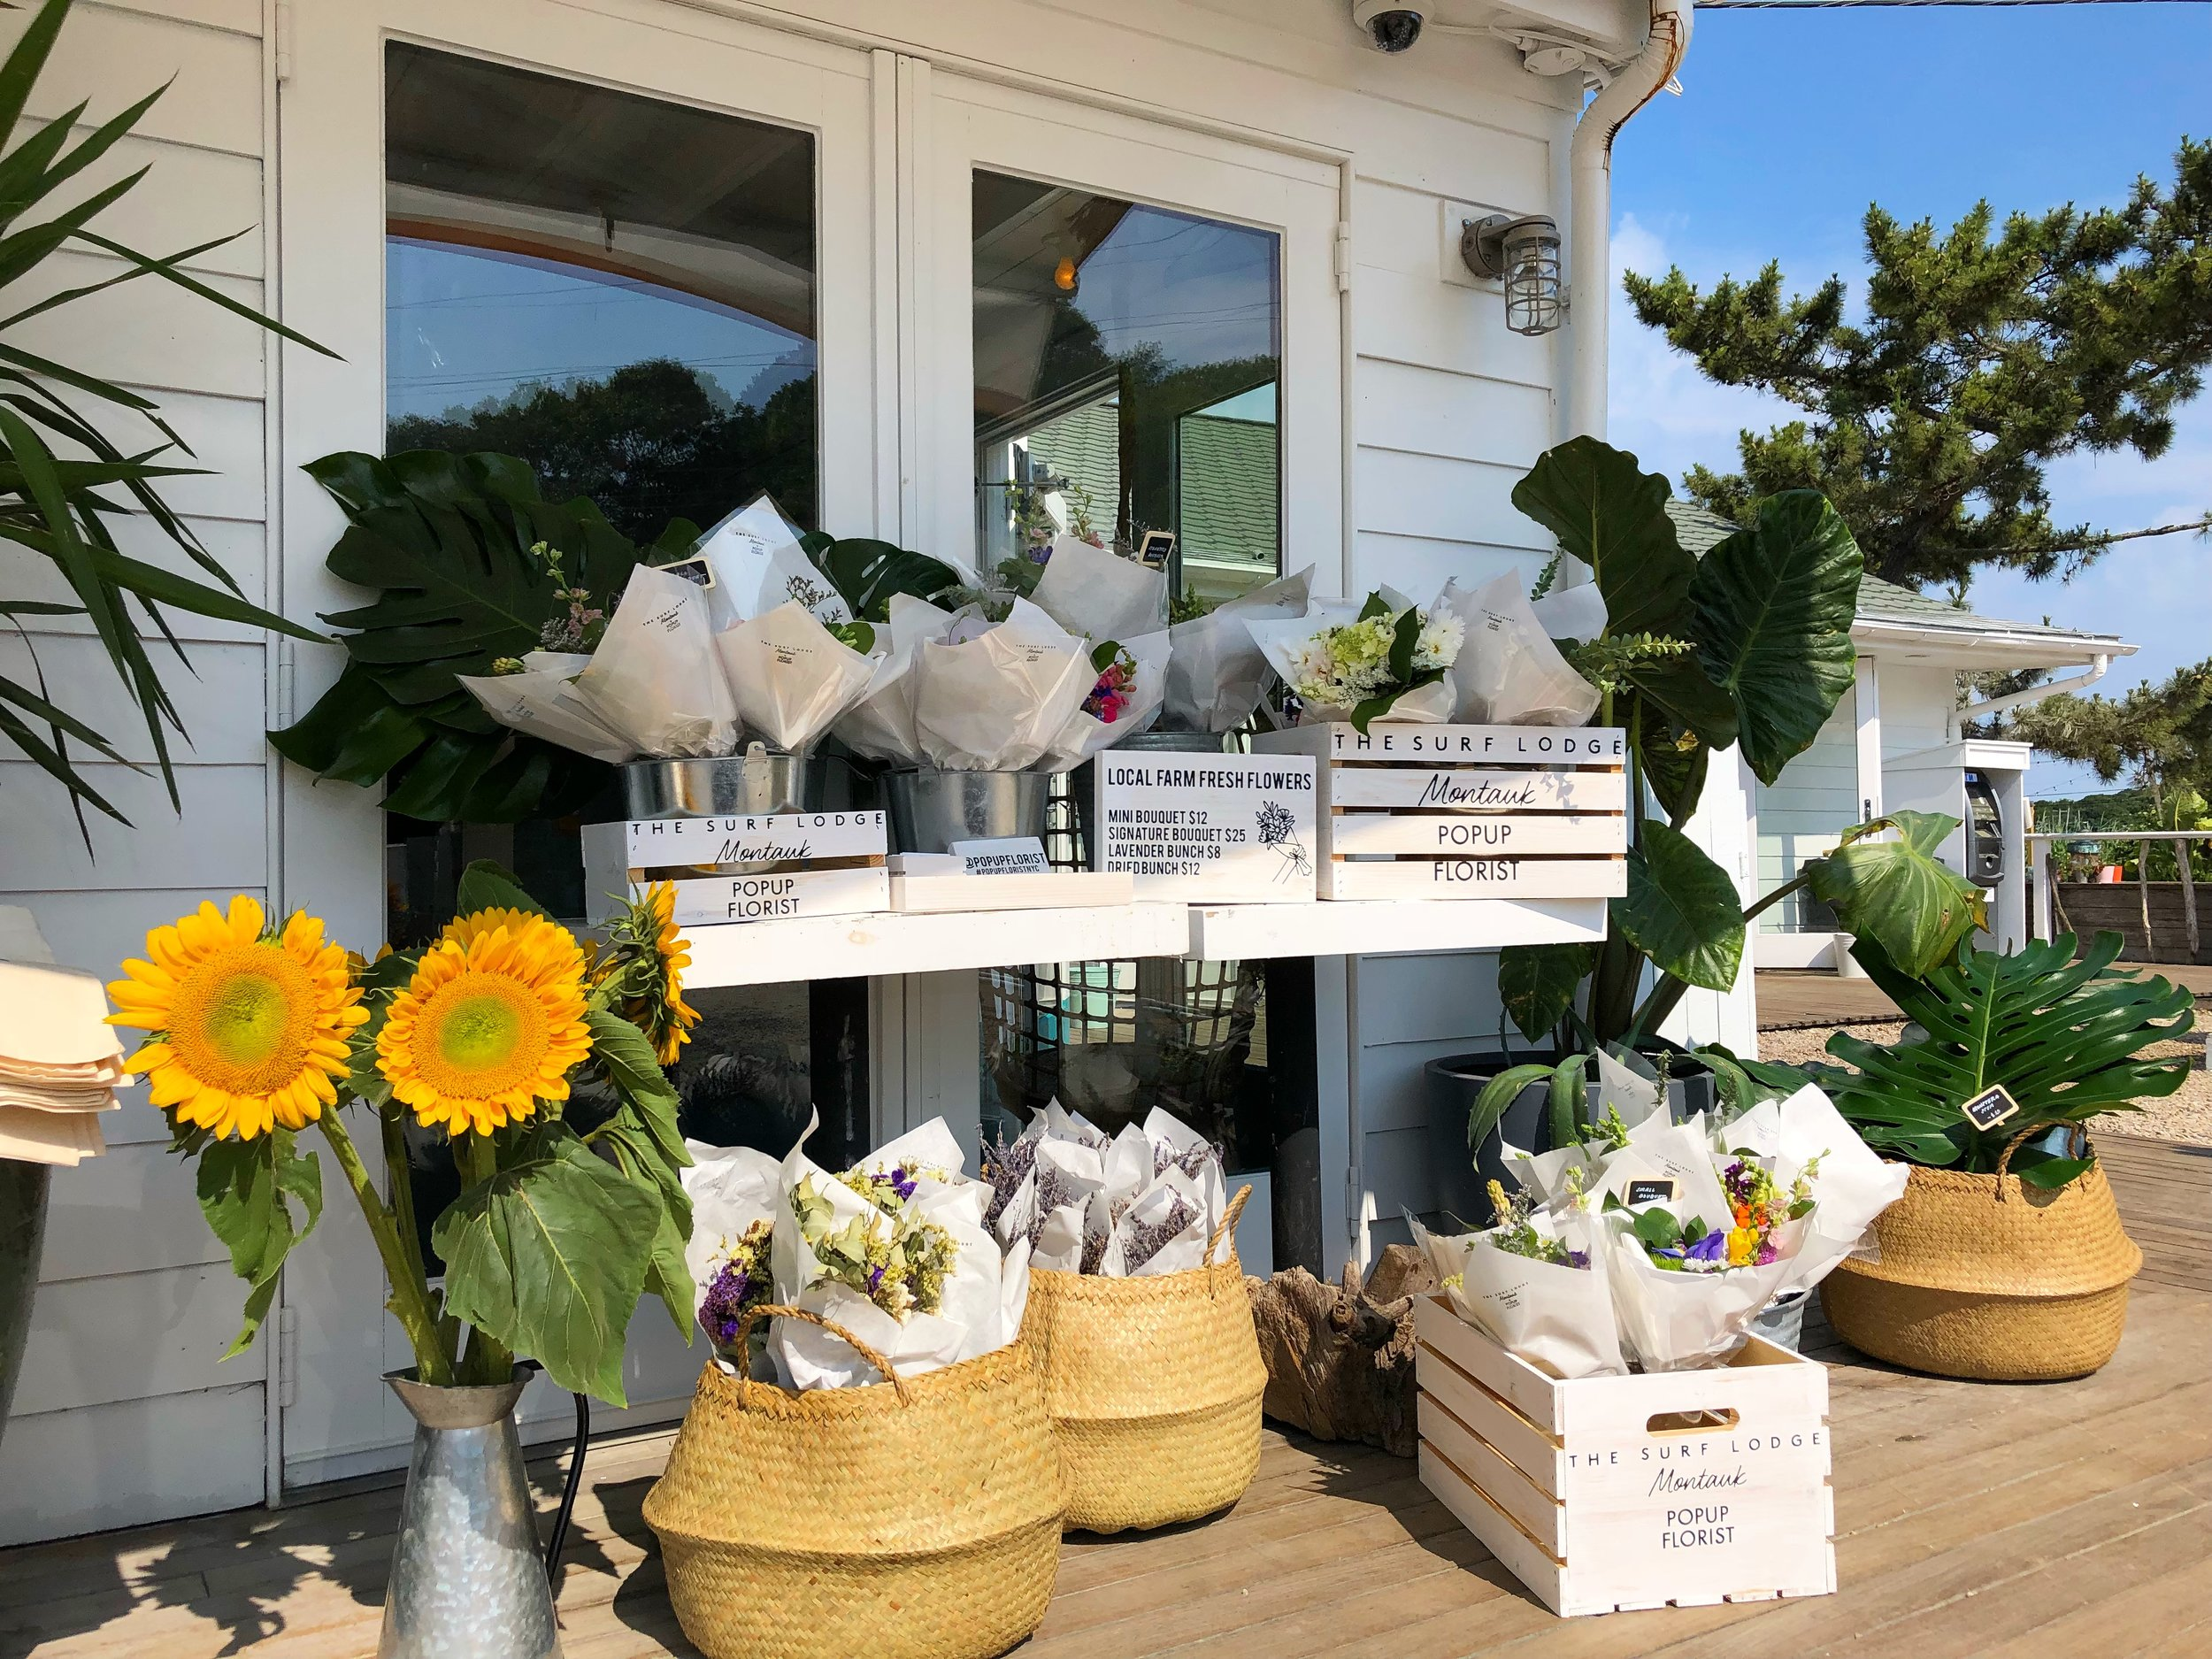 POPUP at the Surf Lodge, July 2018